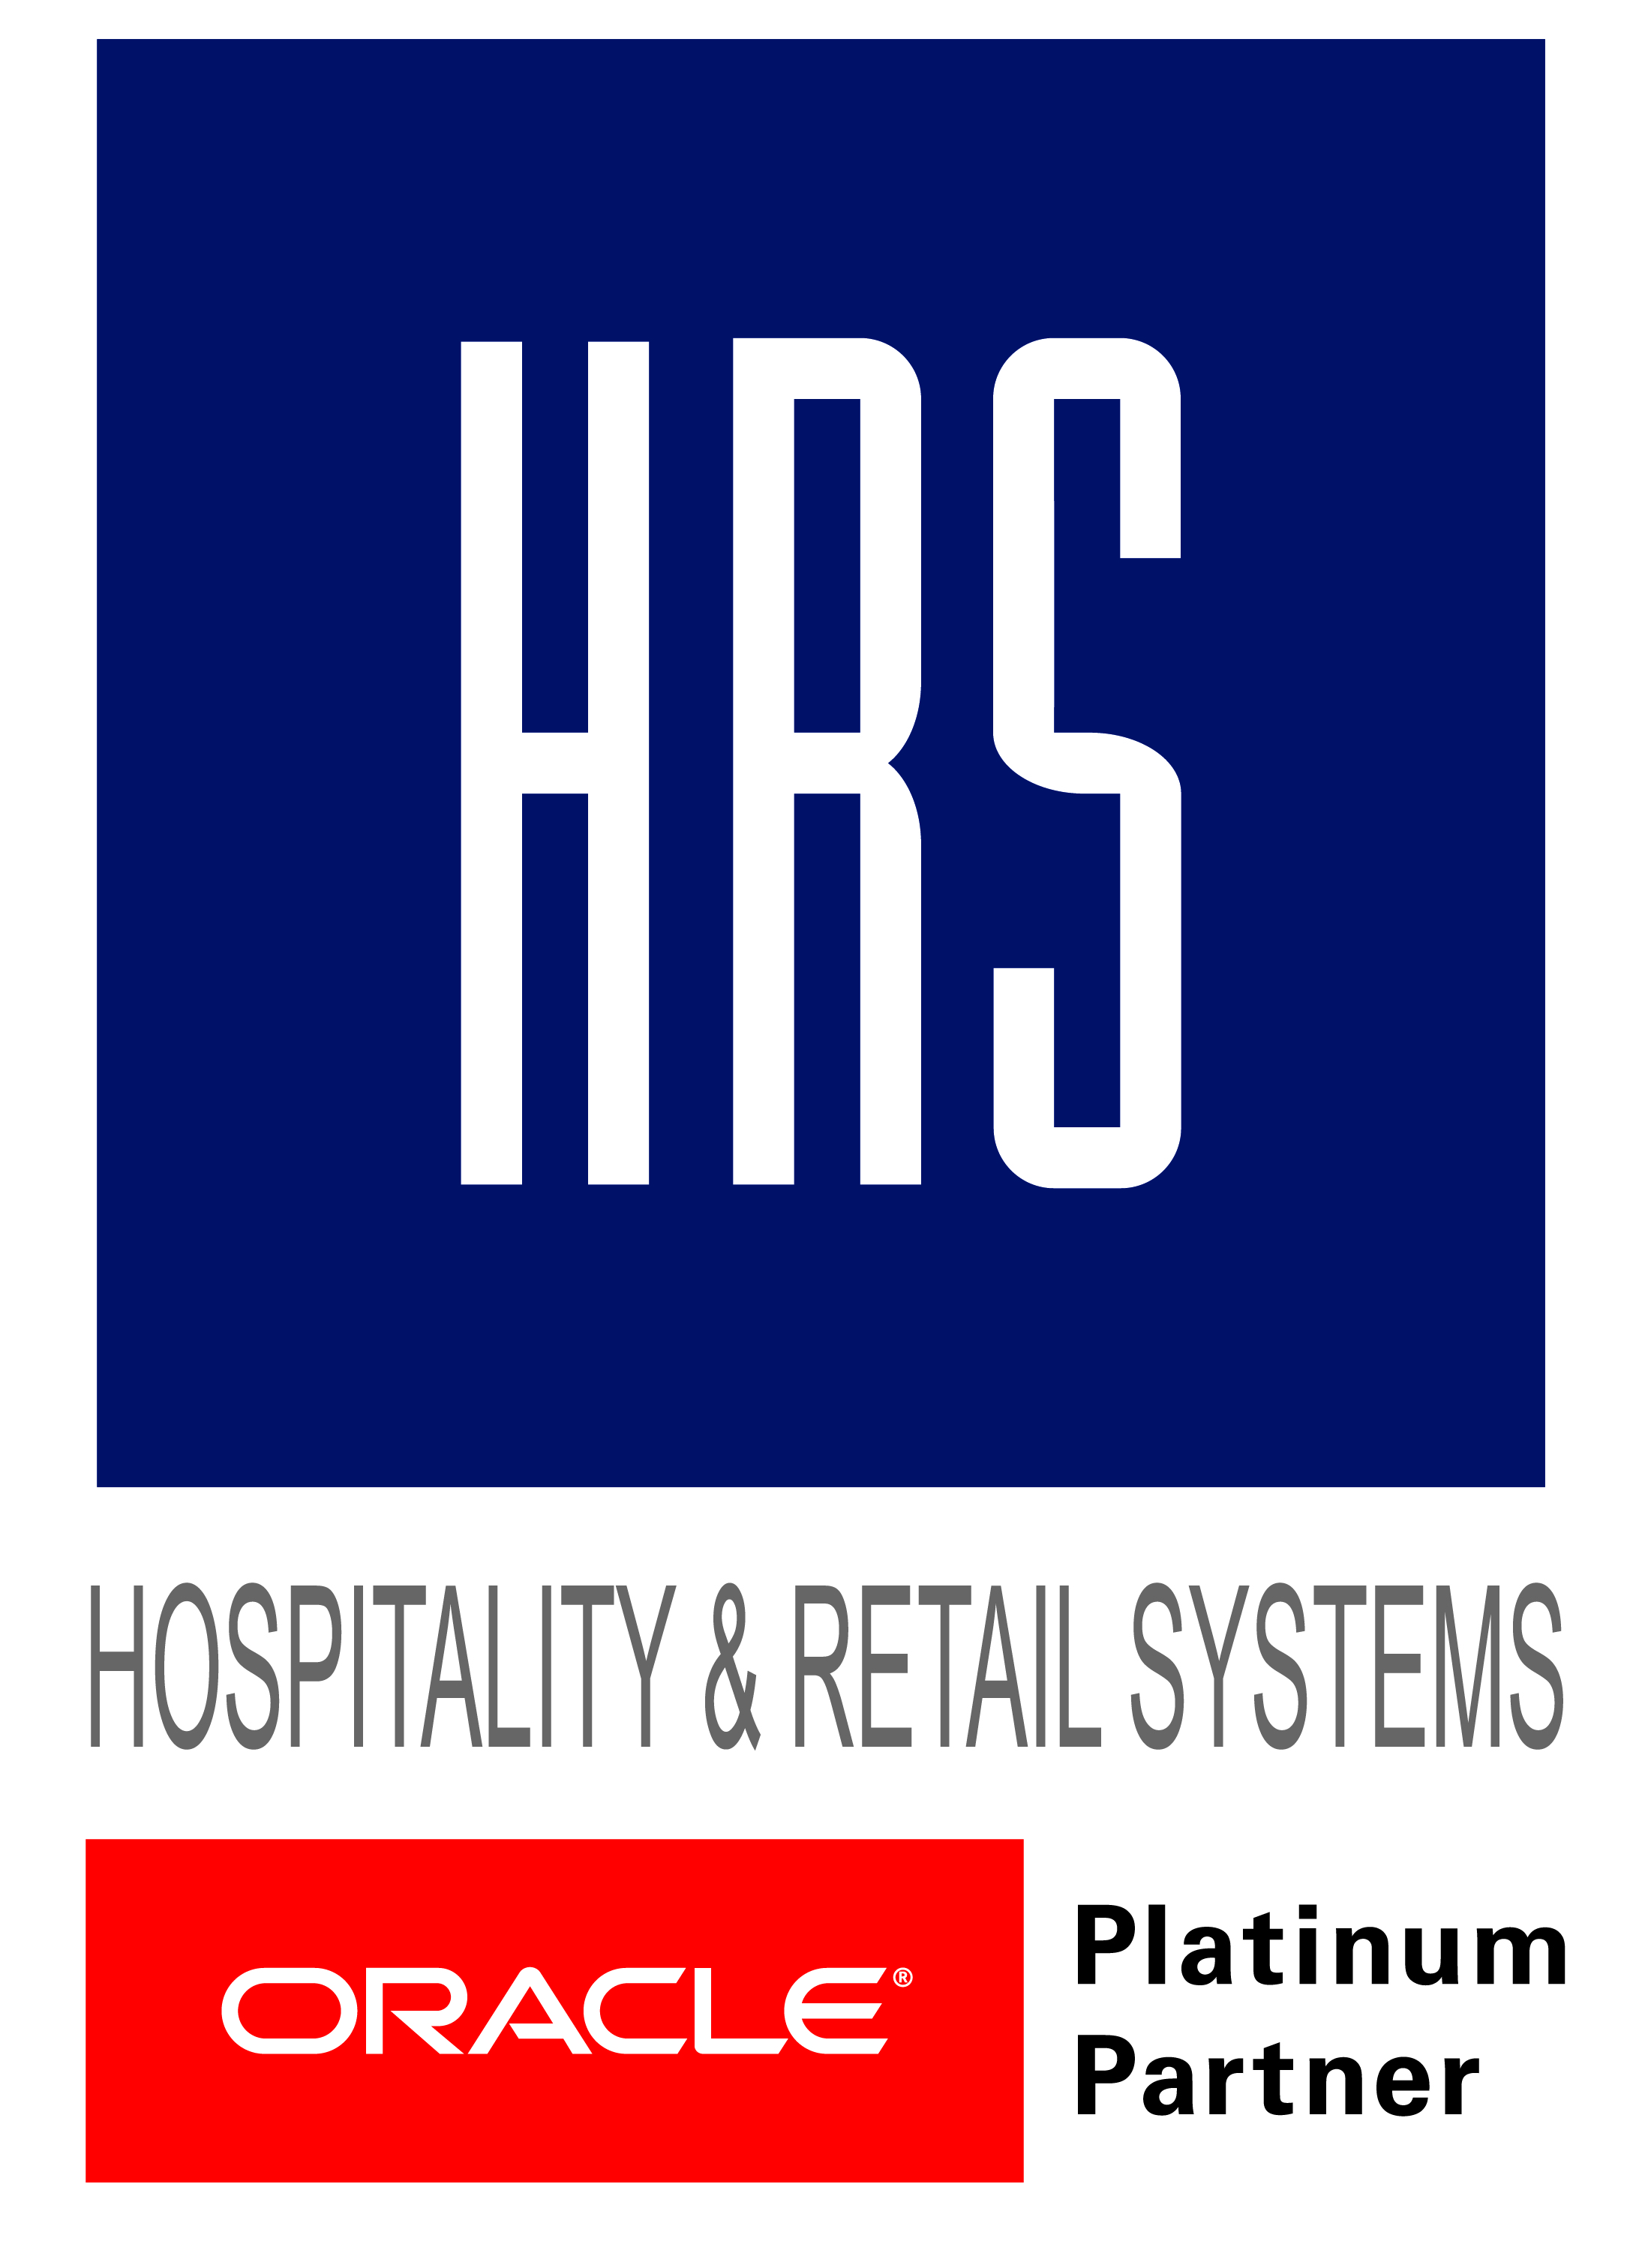 logo office and restaurants oracle vaughan its maldives chains provides systems for platinum fitness hotels innovative solutions now high retail year spas hrs hospitality in management opens stadiums clubs partner